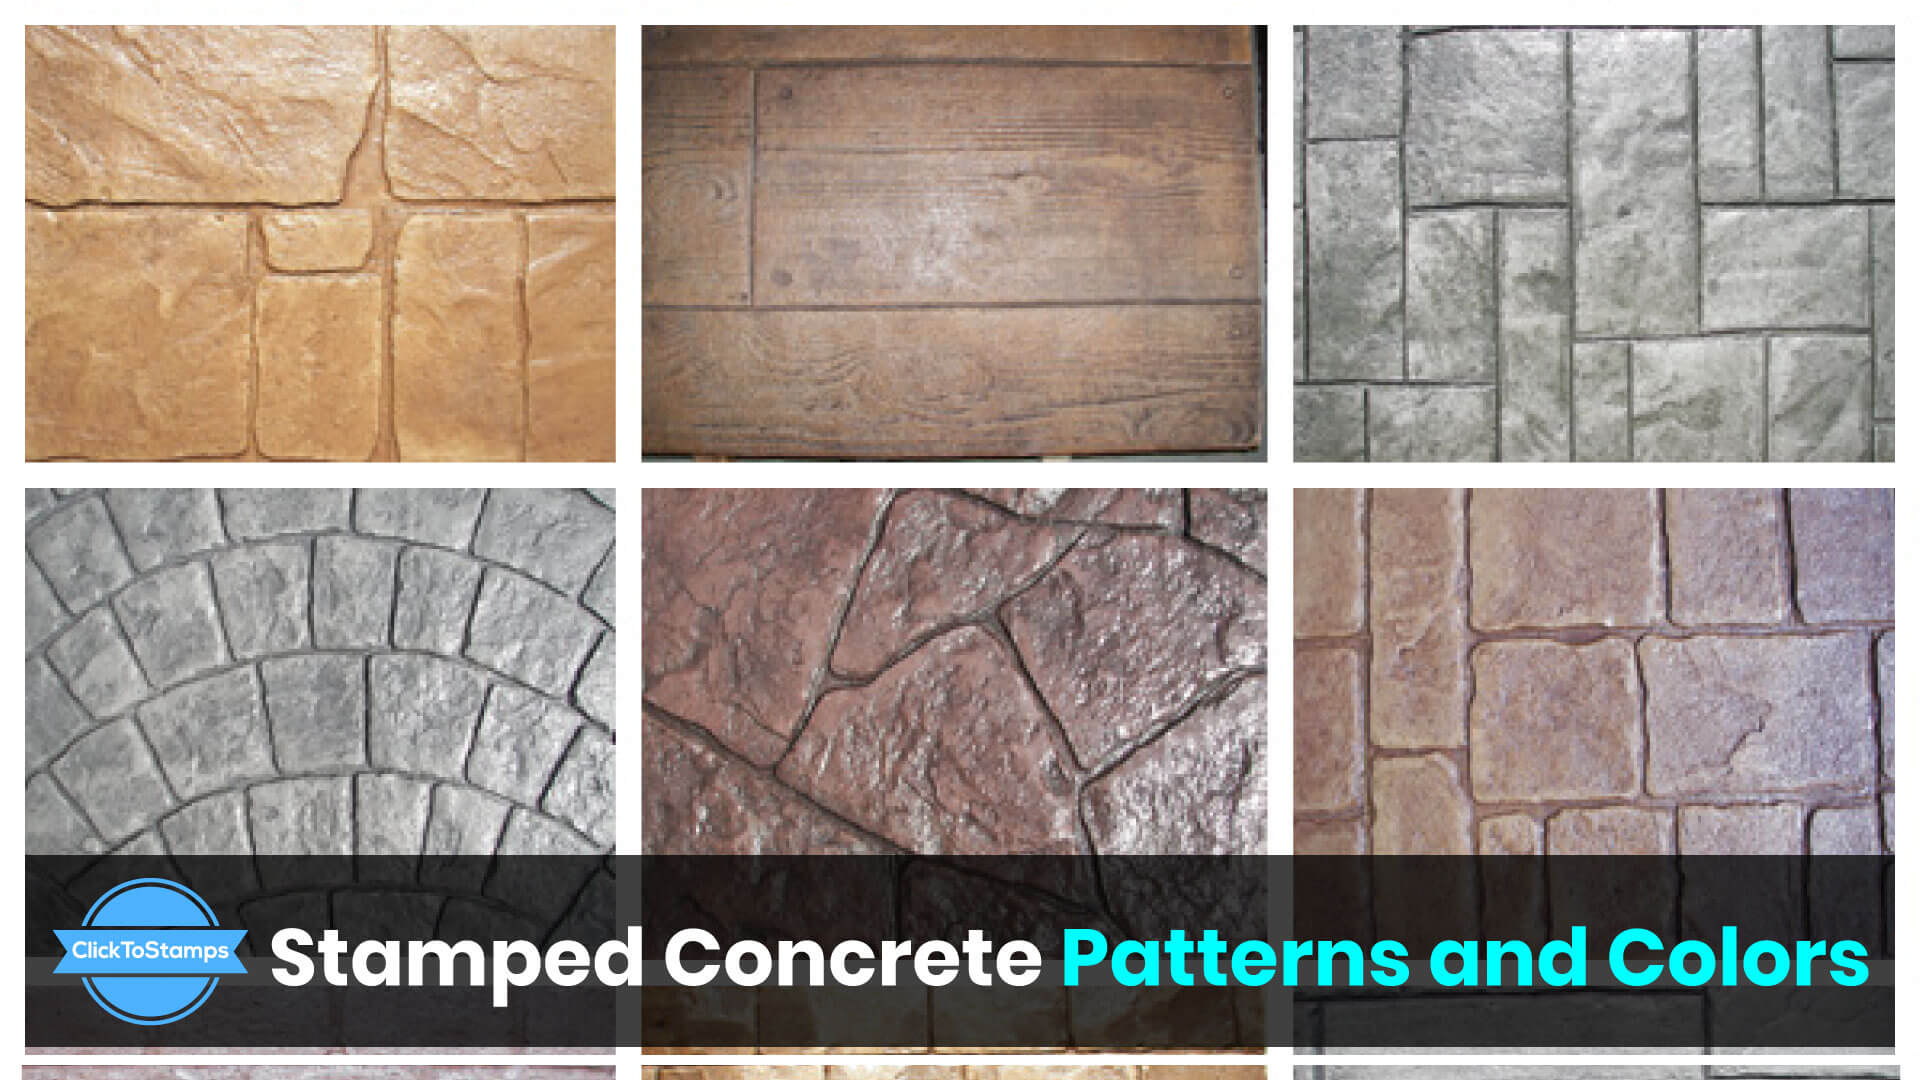 Stamped-Concrete-Patterns-and-Colors